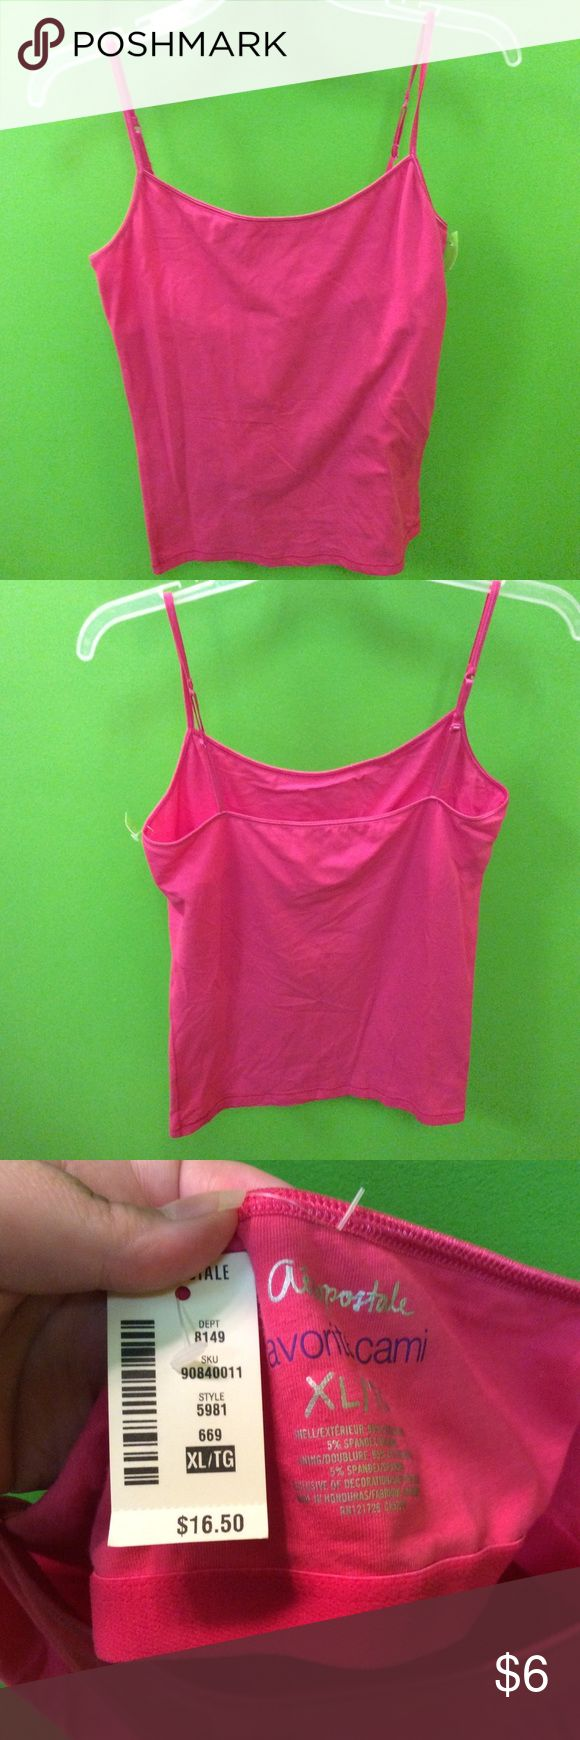 Aeropostale women's pink cami size XL New with tags super cute Aeropostale pink cami size XL Aeropostale Tops Tank Tops